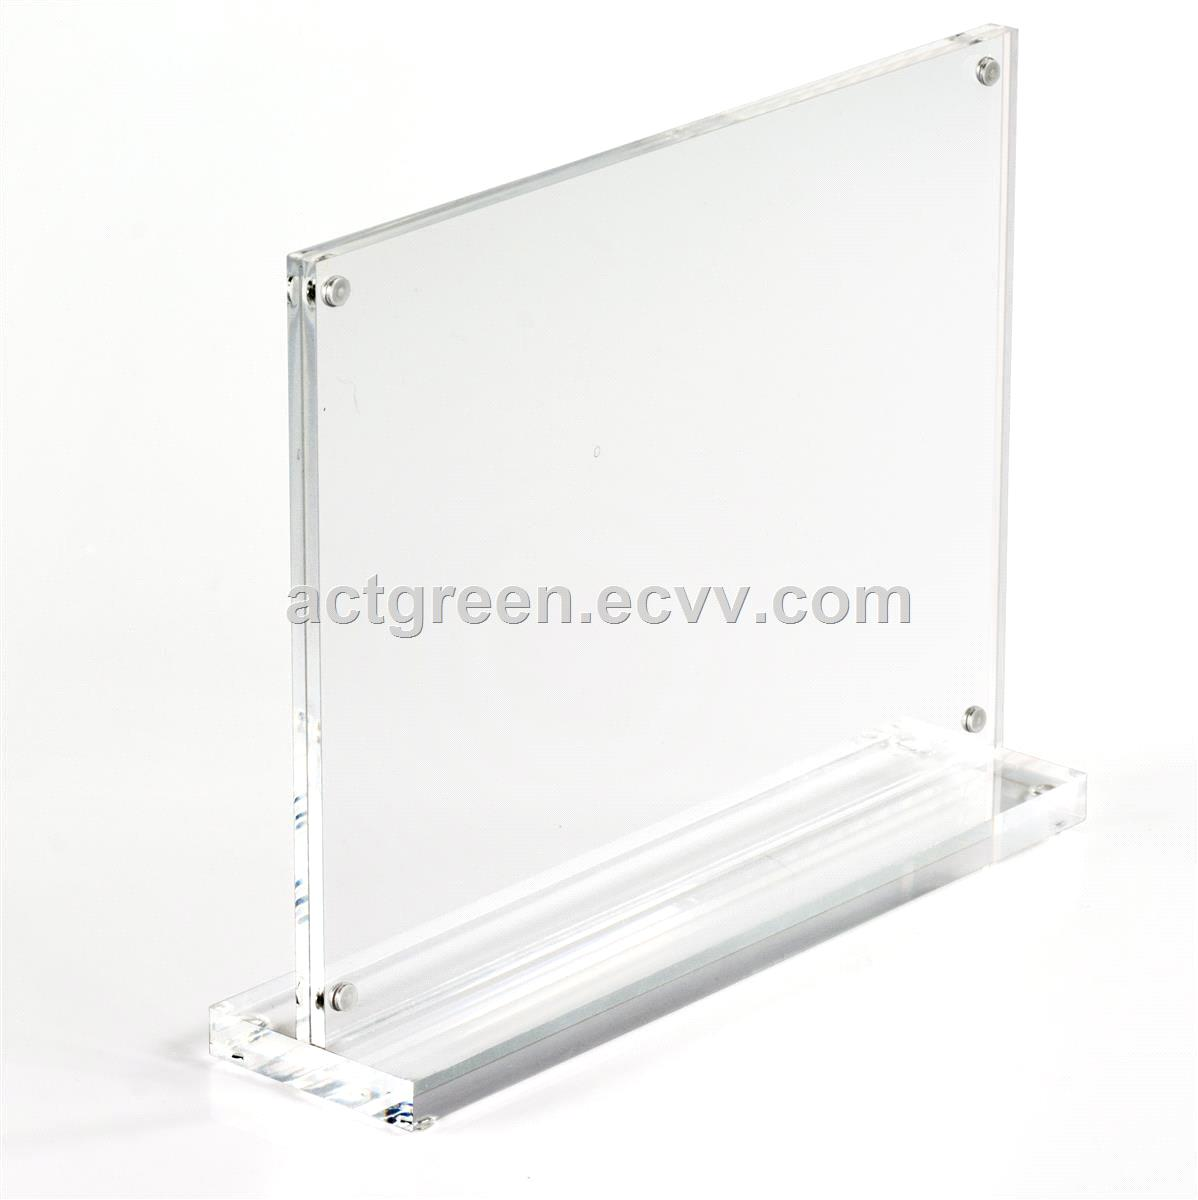 Sign Holder Perspex Acrylic Poster Holder Display Rack Sign Frame Stand Table Advertising Display